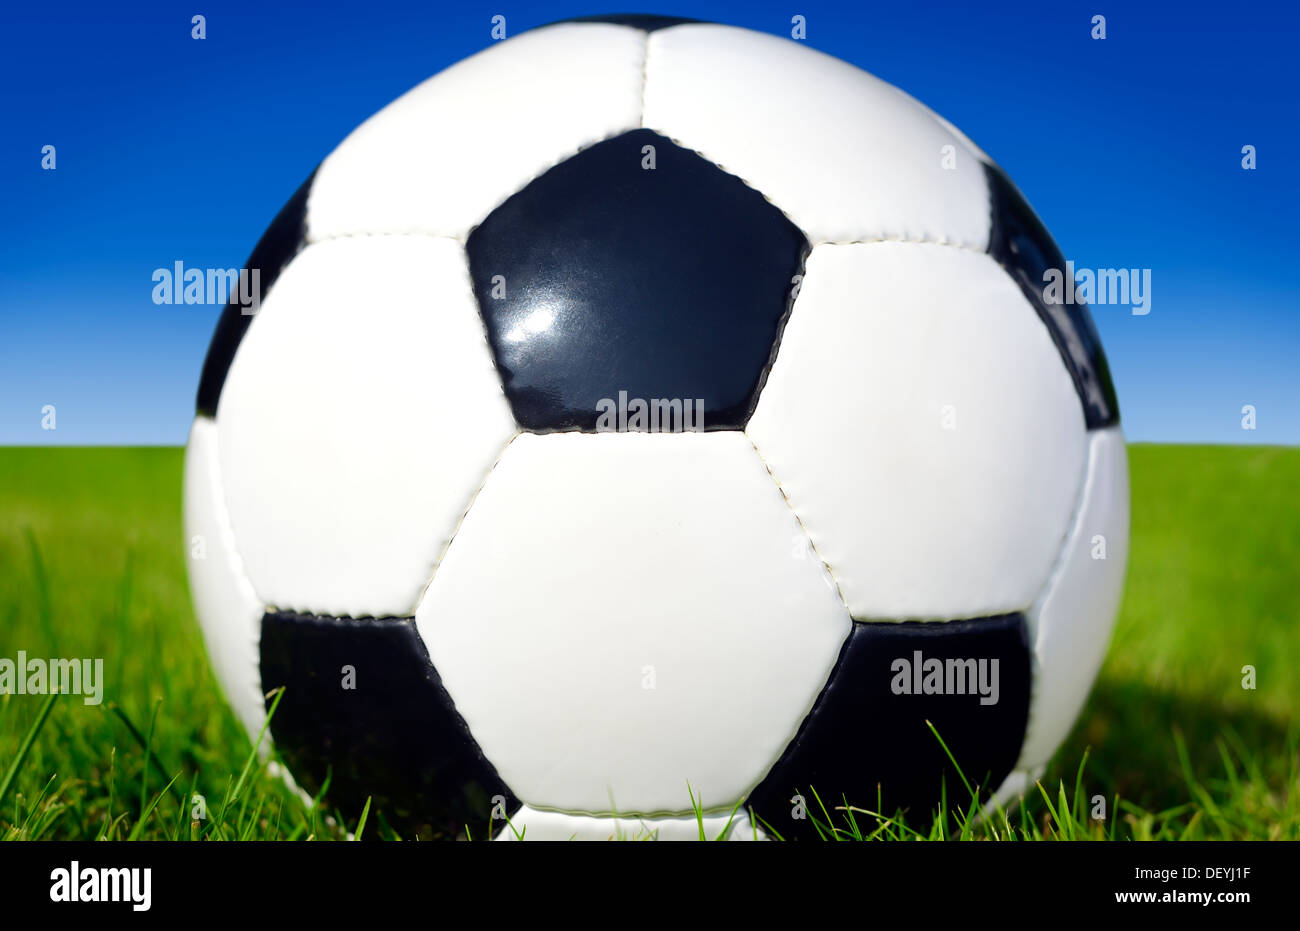 Football, Fußball Stock Photo